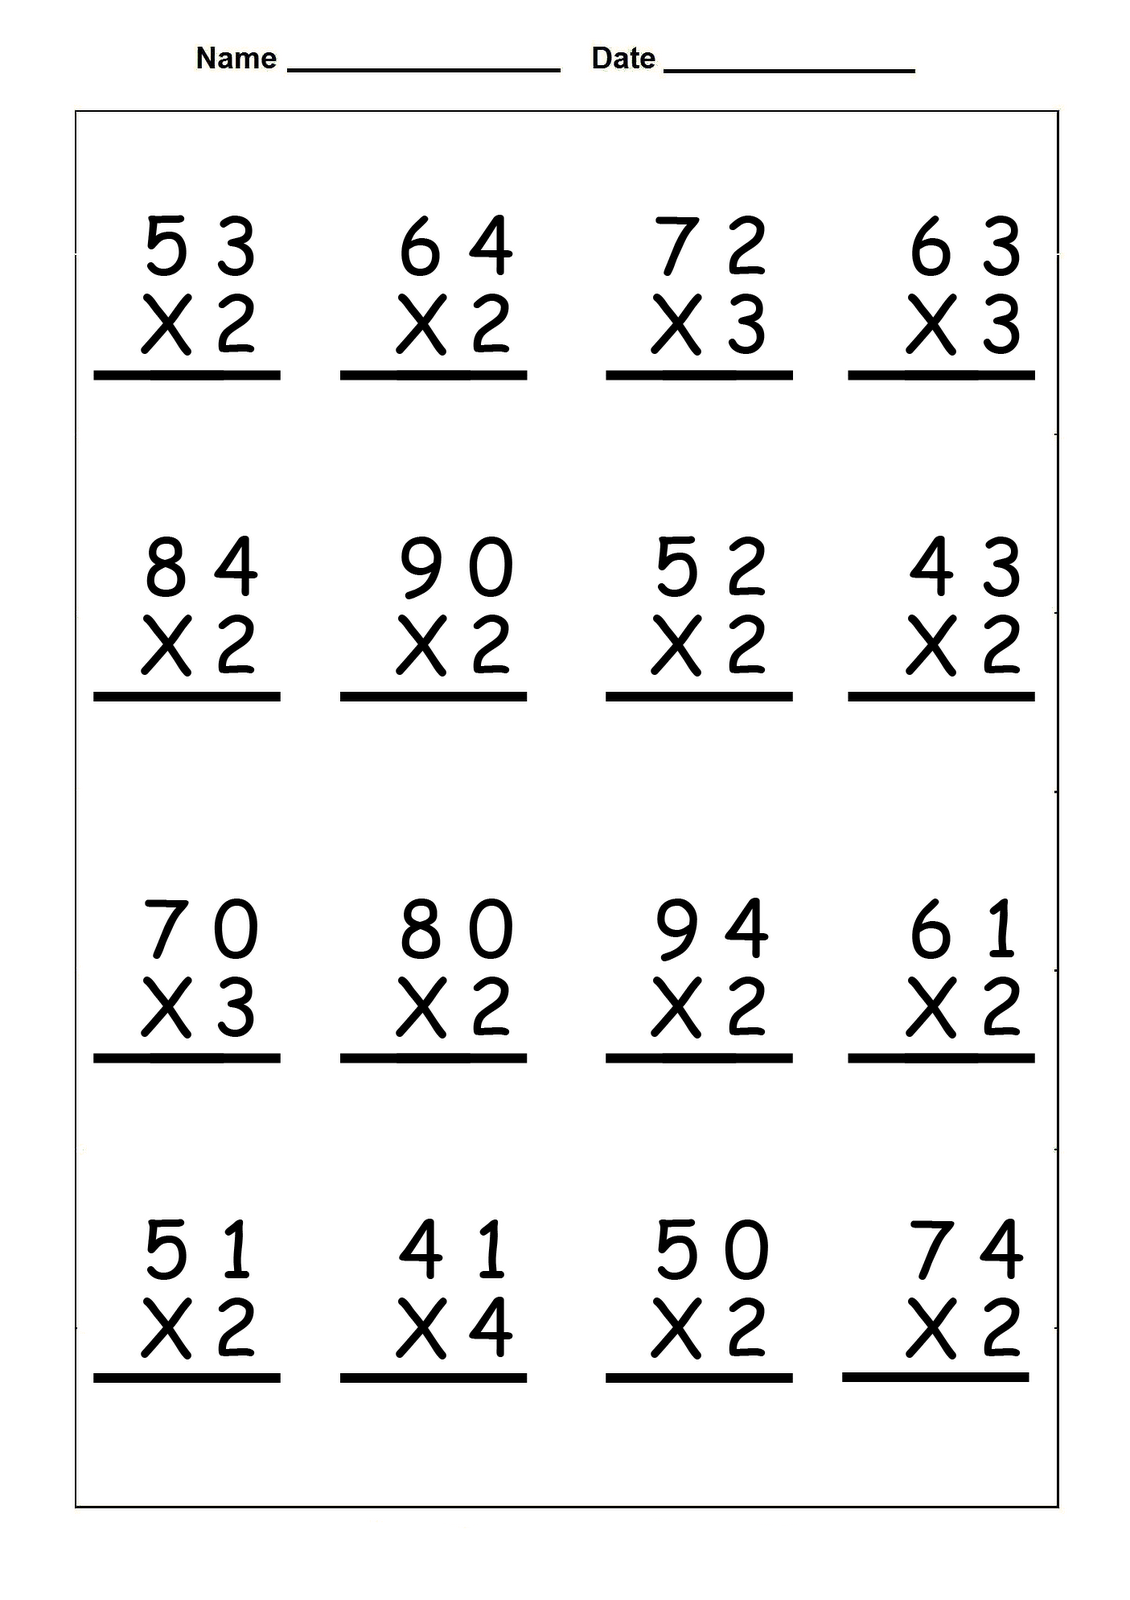 4th Grade Multiplication Worksheets - Best Coloring Pages For Kids   Math  fact worksheets [ 1600 x 1130 Pixel ]